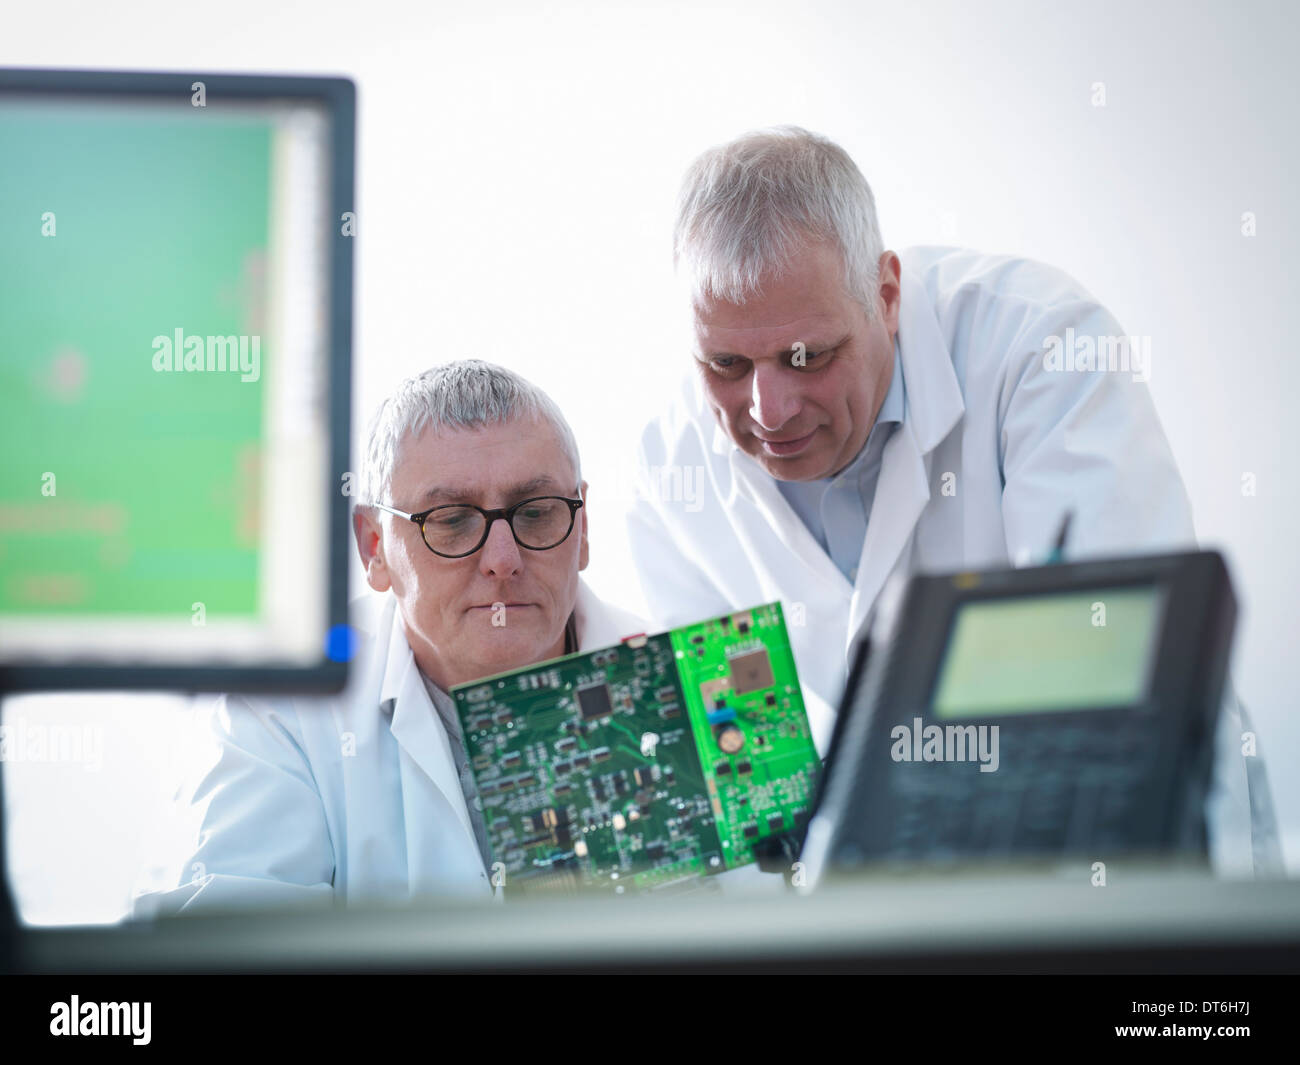 Engineers designing electronic circuitry for automotive use - Stock Image